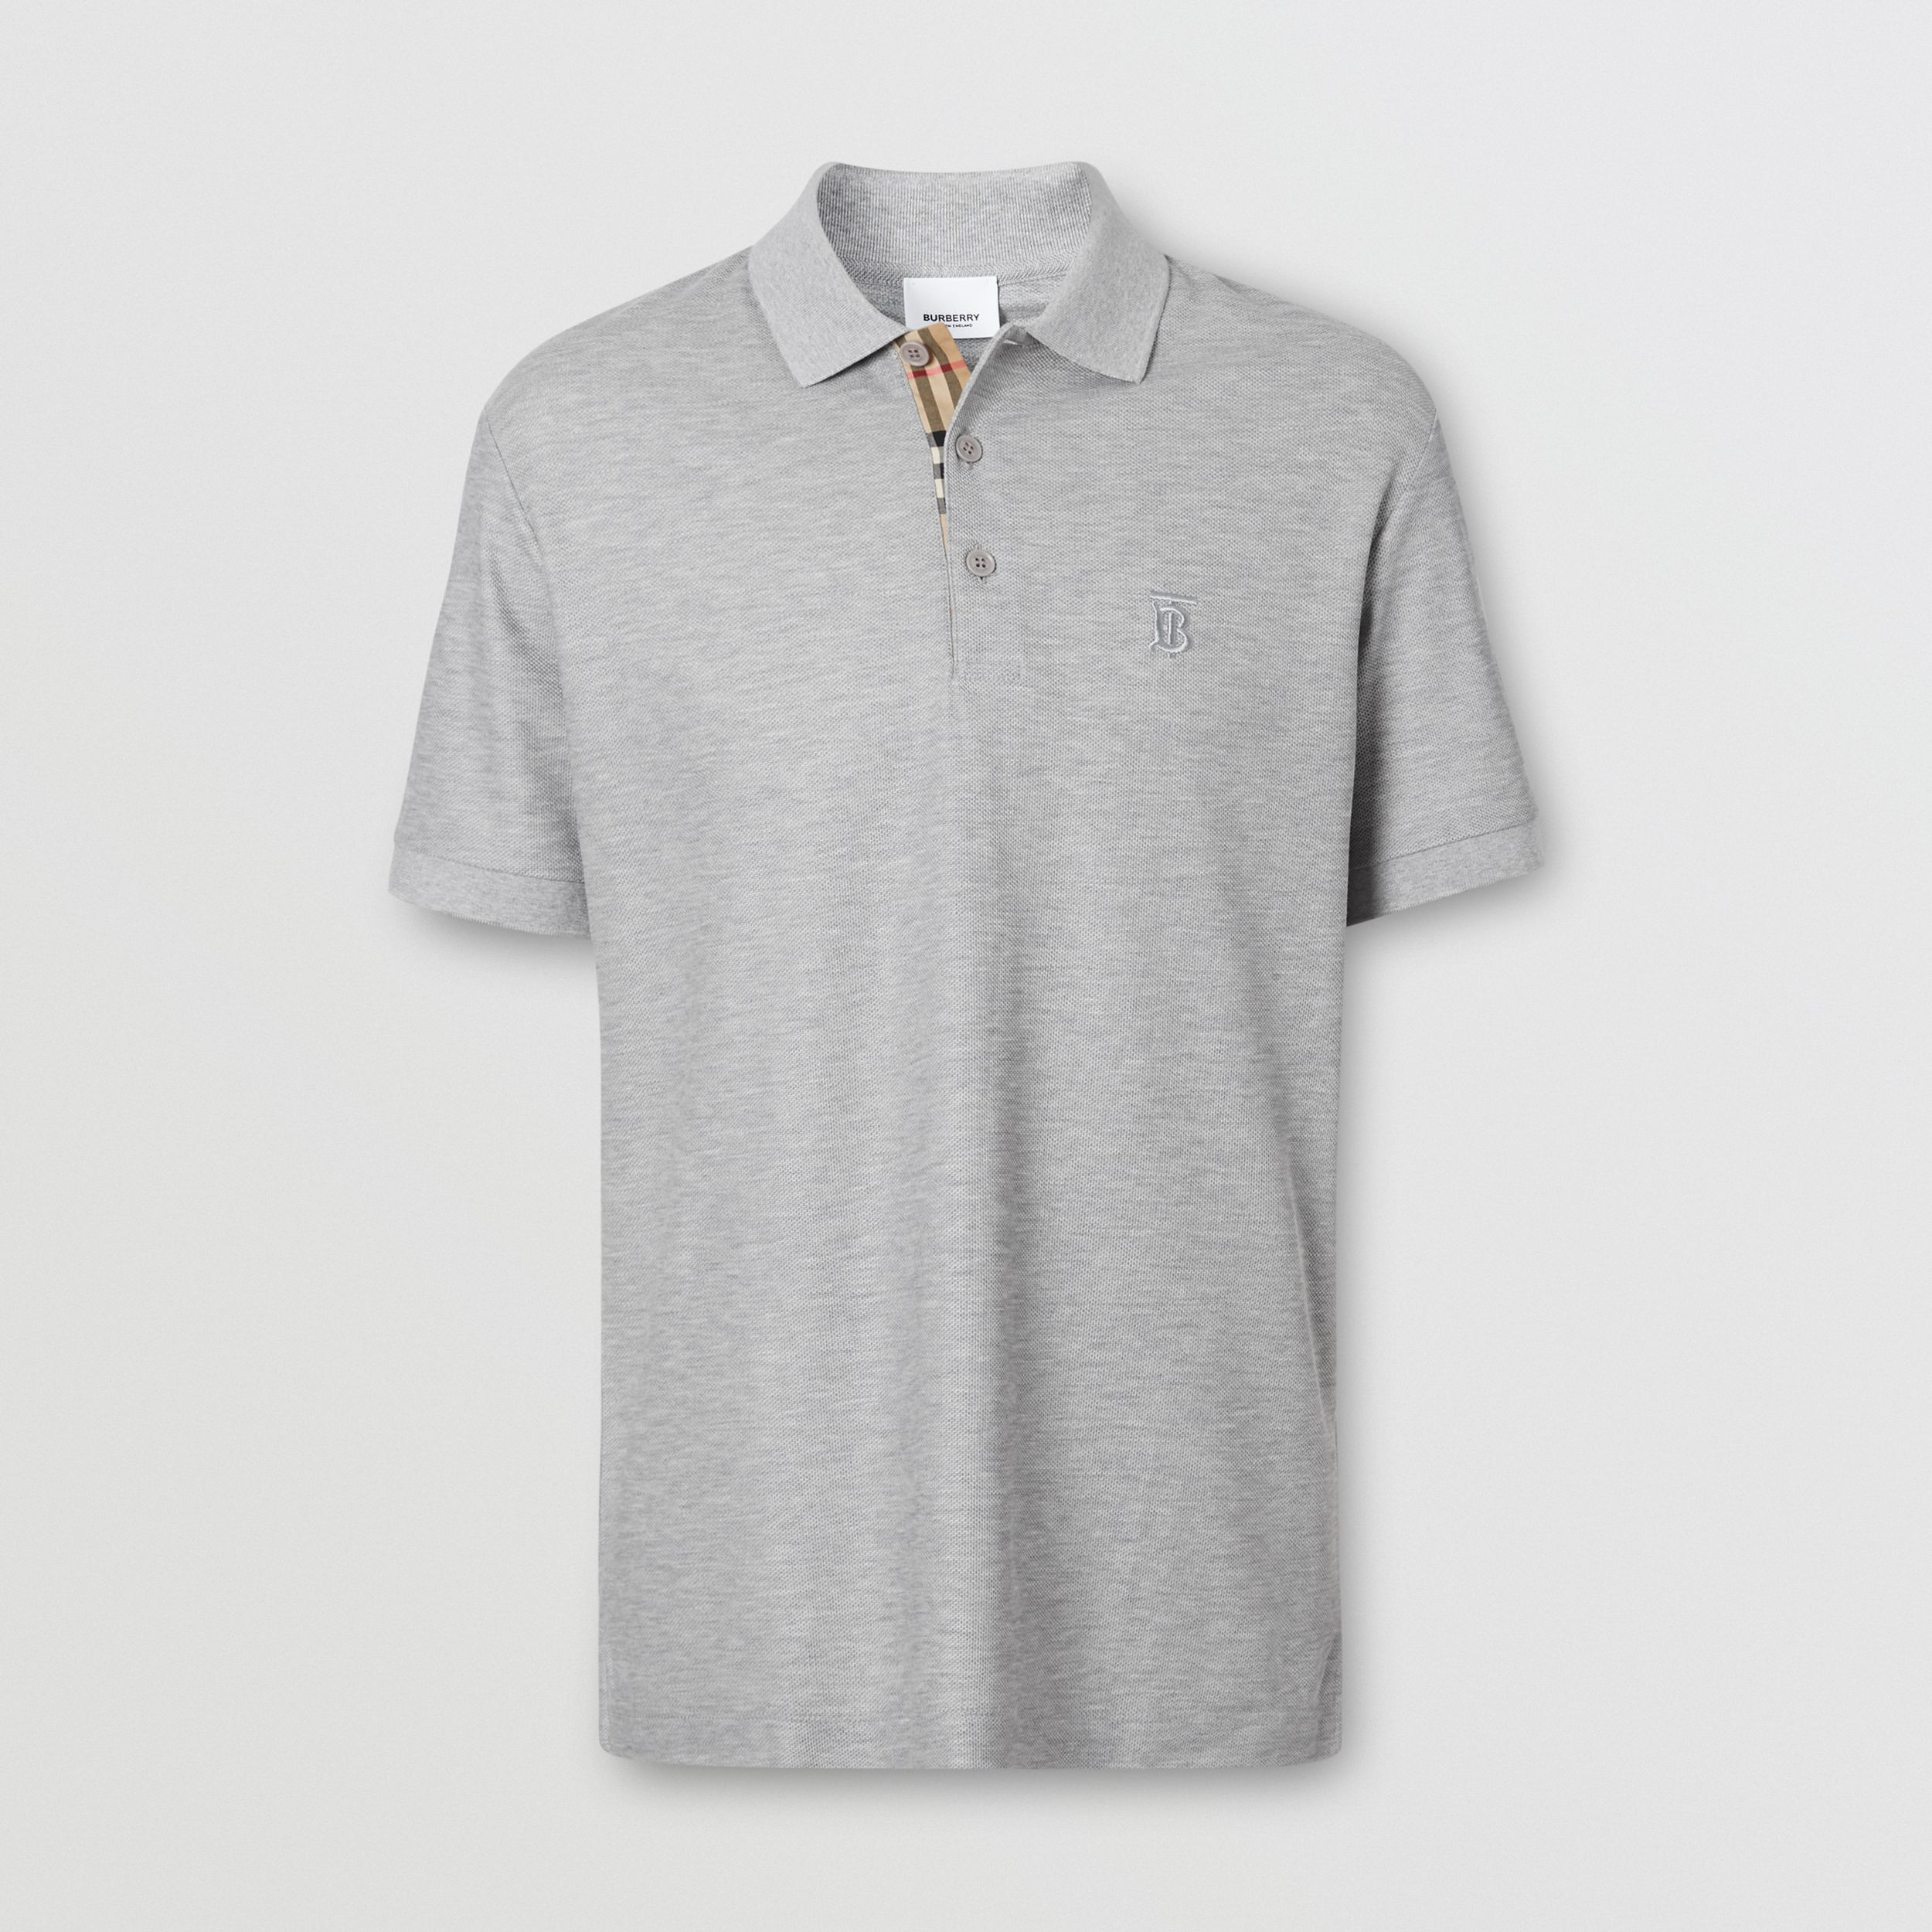 Monogram Motif Cotton Piqué Polo Shirt in Pale Grey Melange - Men | Burberry Australia - 4